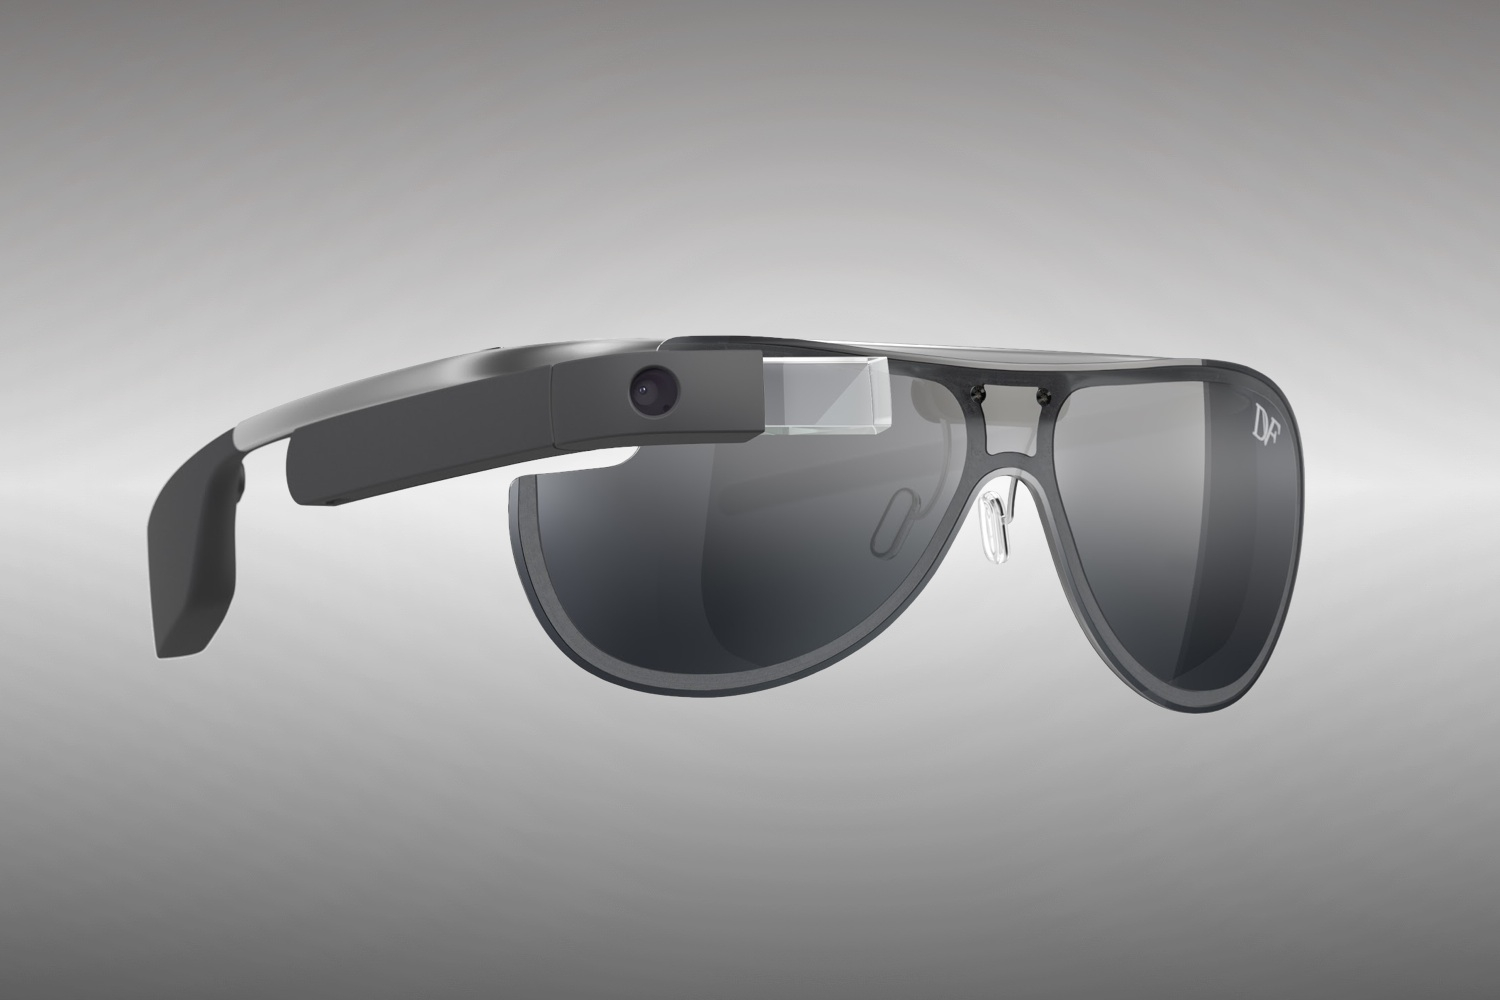 4 Reasons Google Glass Failed